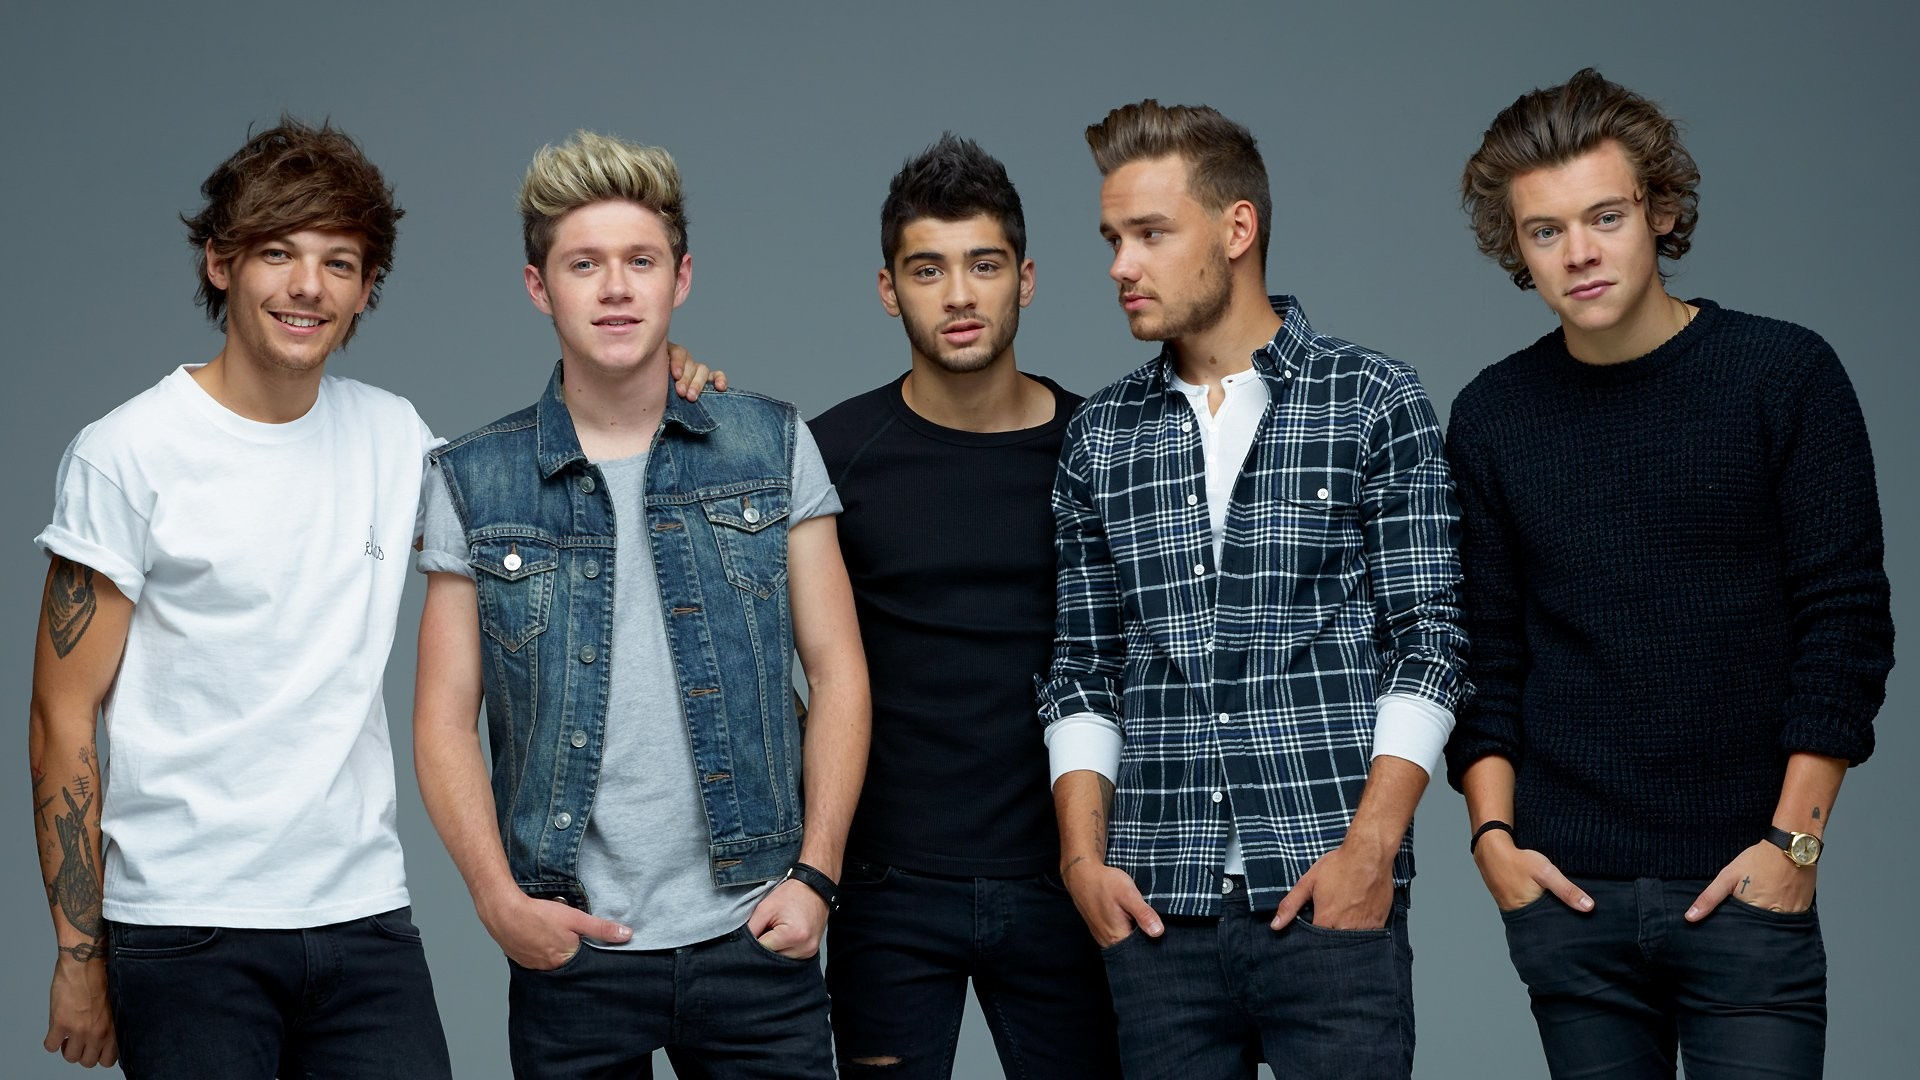 1920x1200 One Direction 2014 Wallpaper